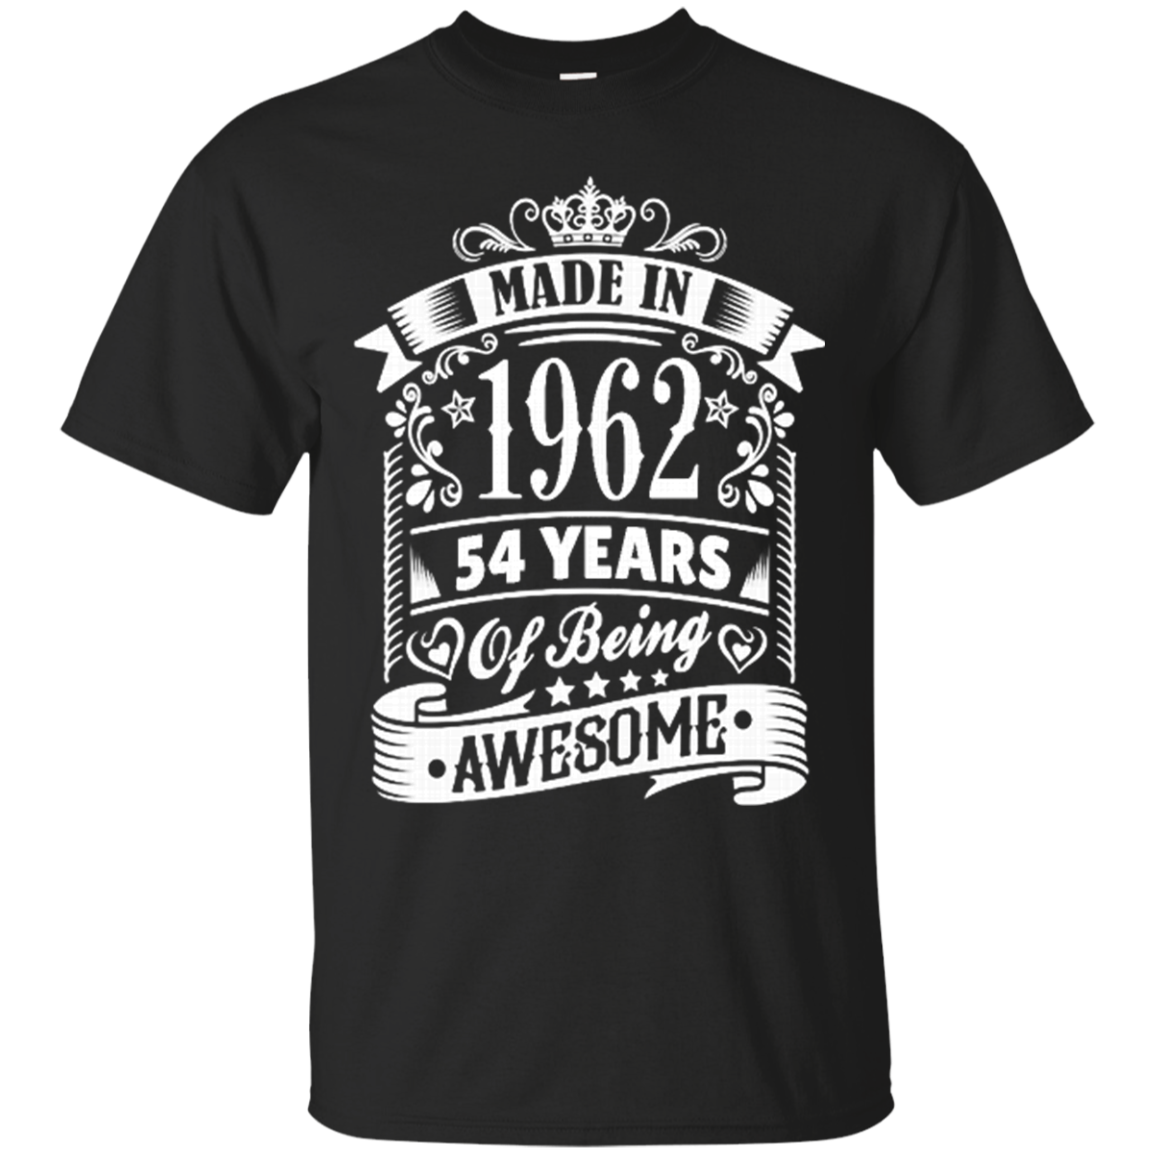 1962 Shirts Made In 1962 54 Years Of Being Awesome Hoodies Sweatshirts